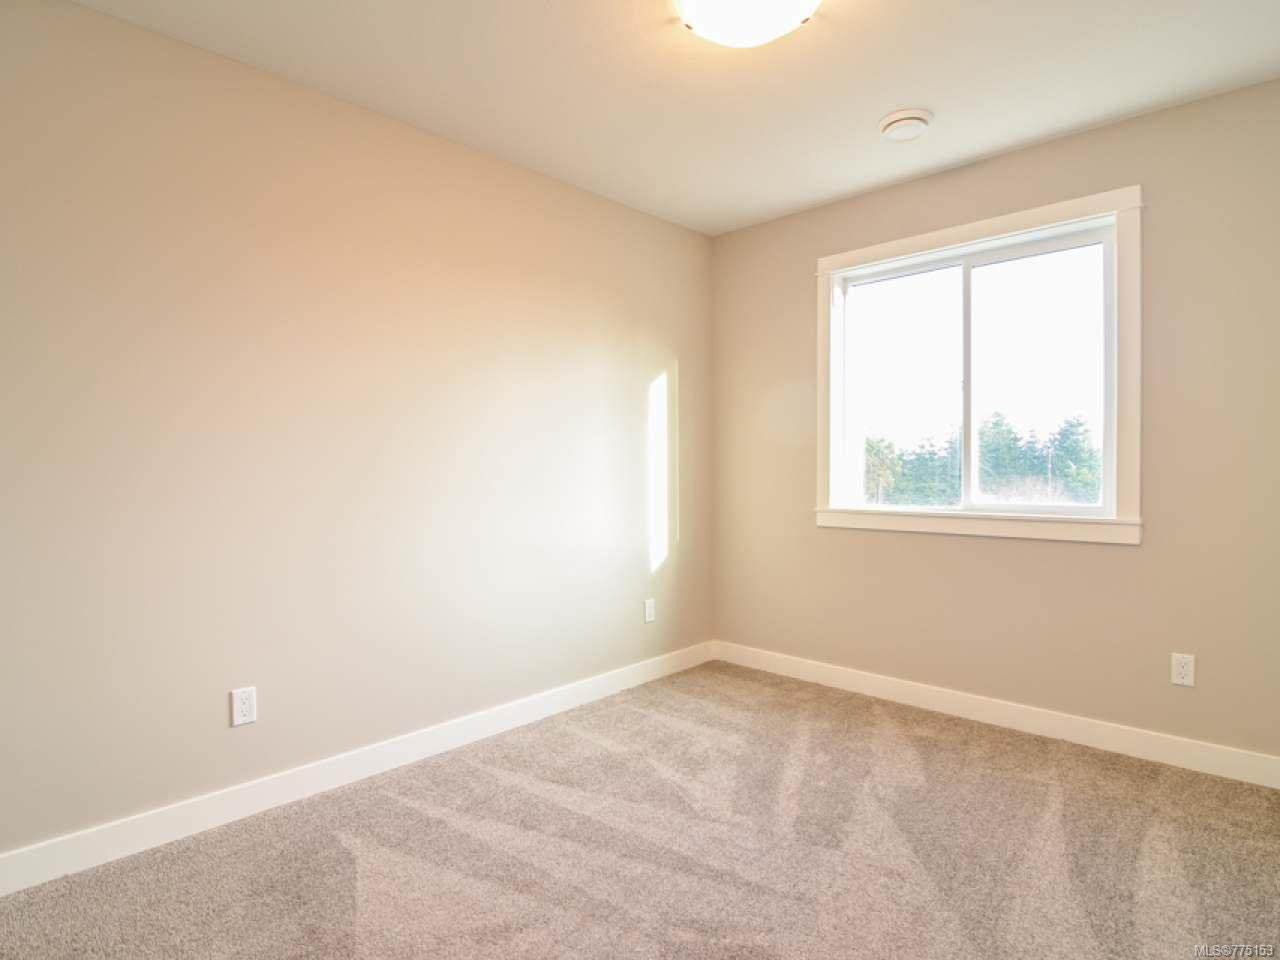 Photo 11: Photos: 2 595 Petersen Rd in CAMPBELL RIVER: CR Campbell River West Half Duplex for sale (Campbell River)  : MLS®# 775153